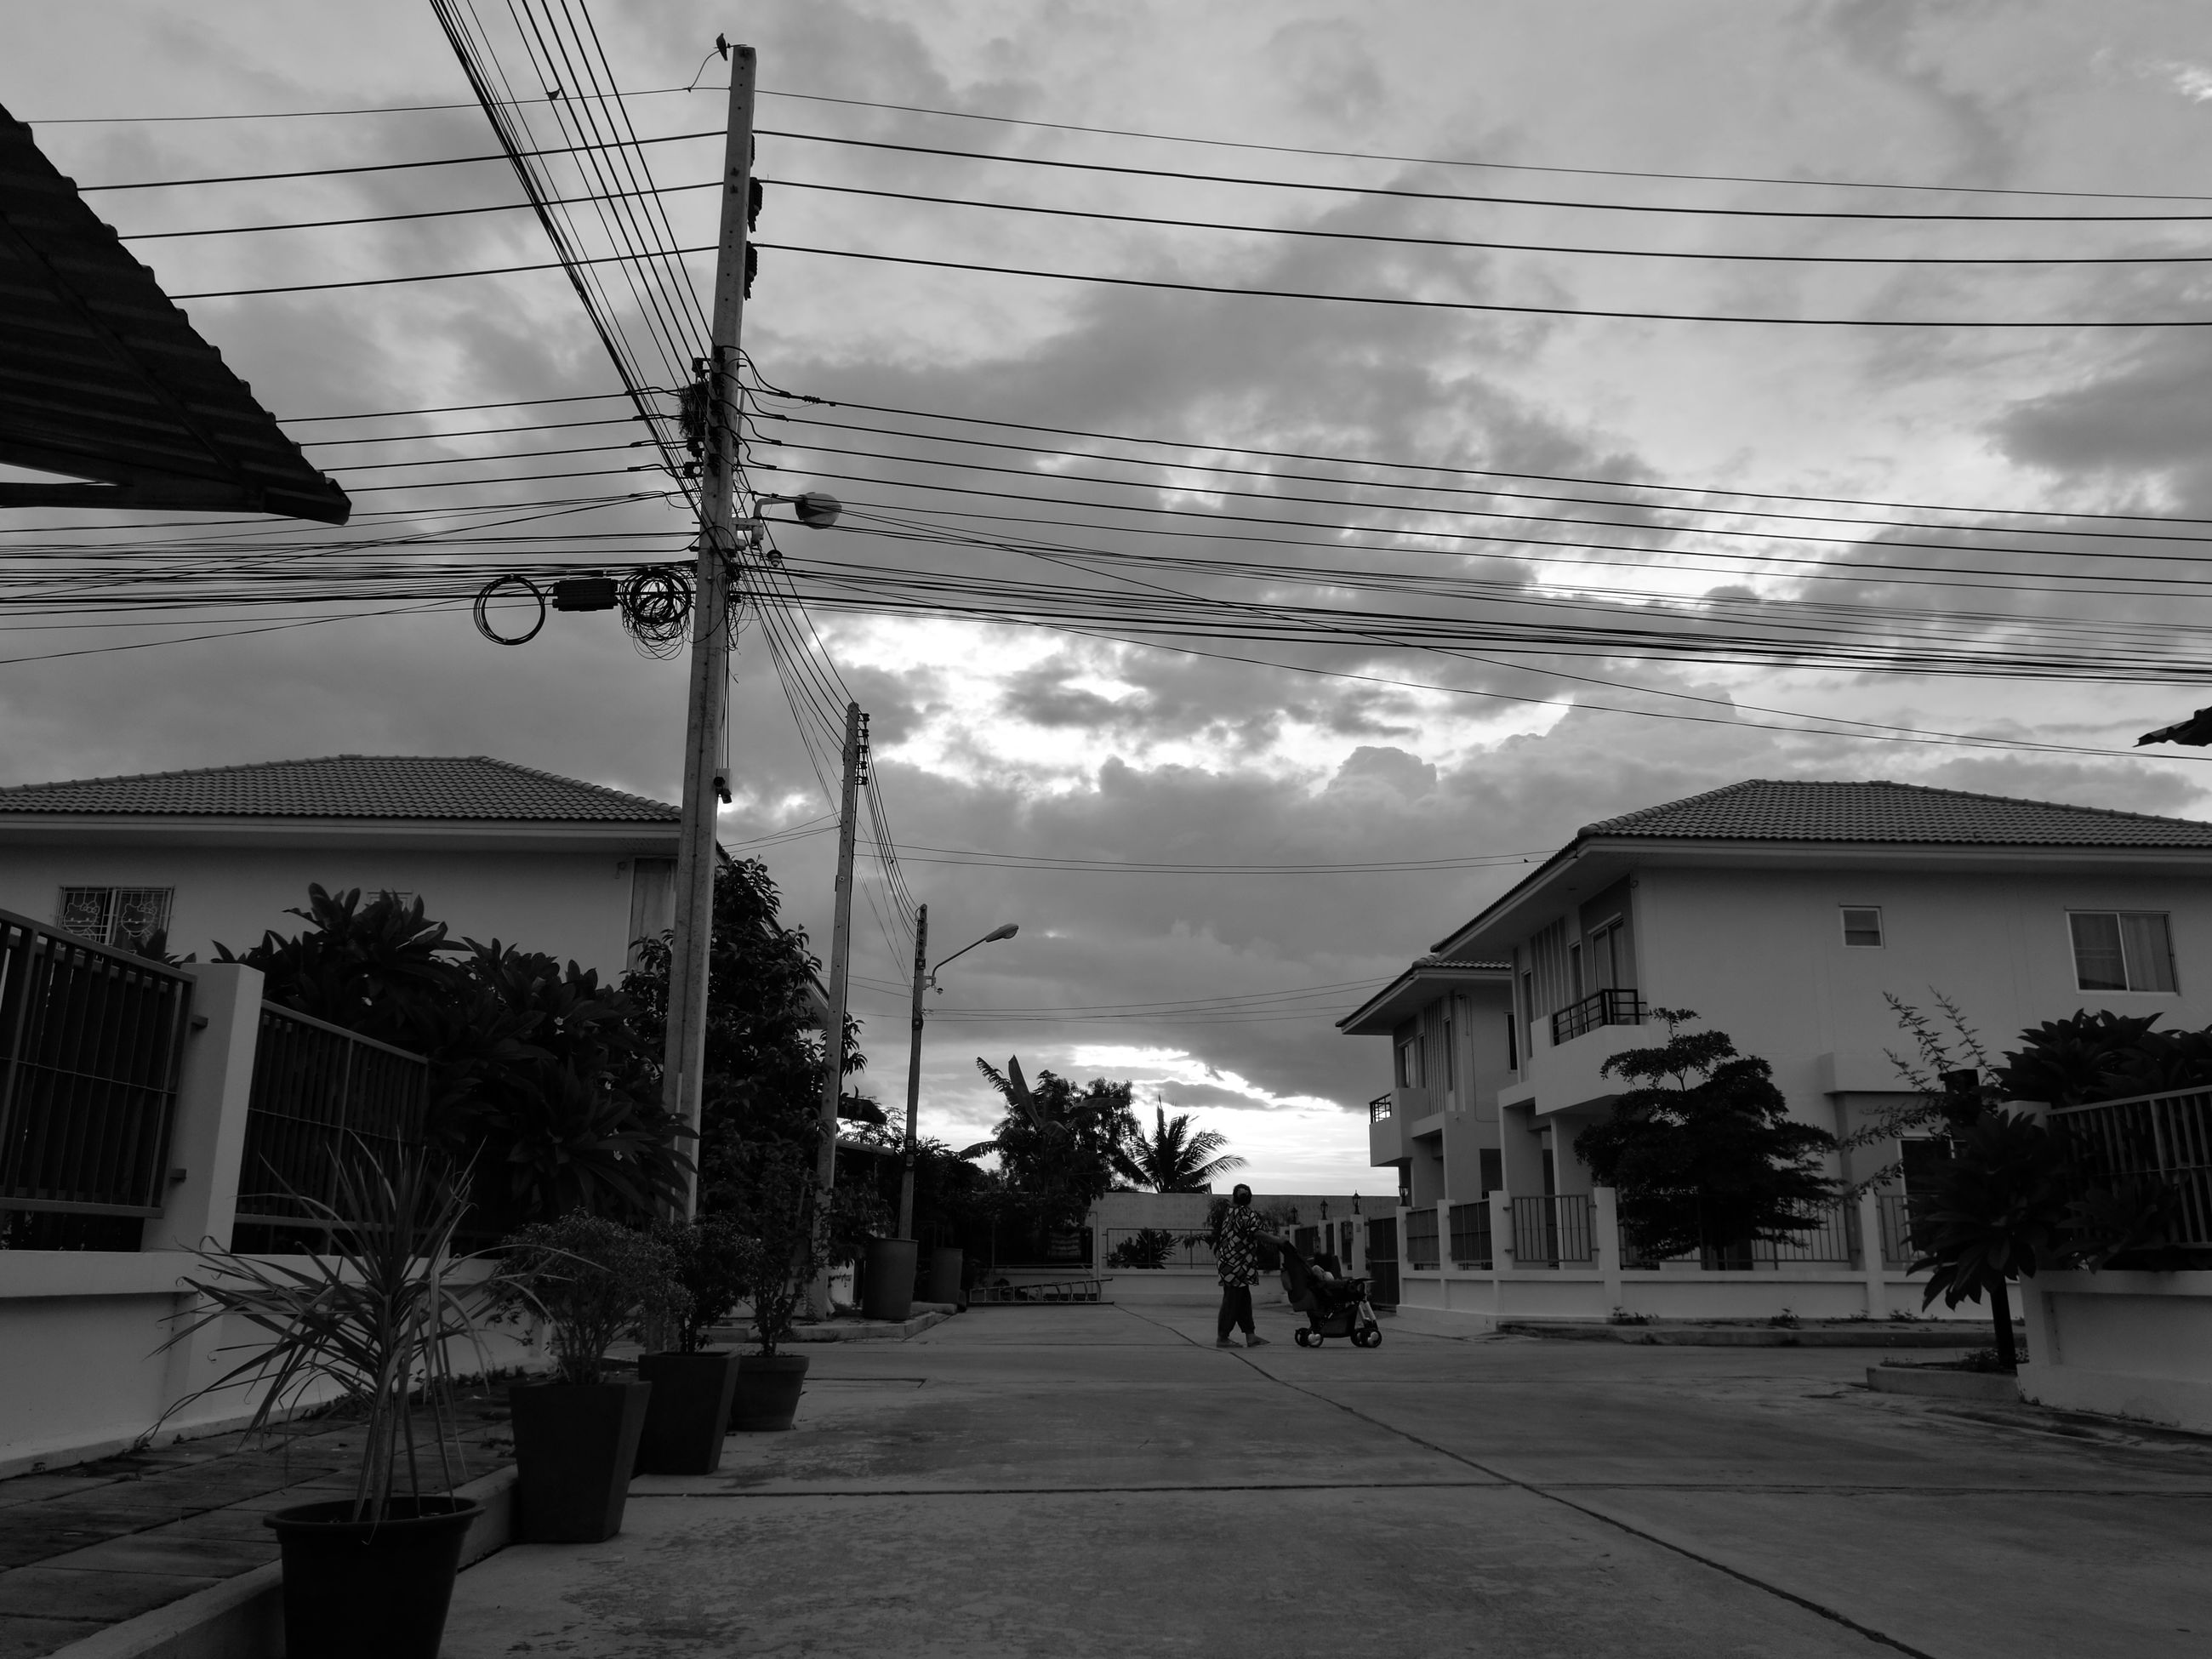 architecture, built structure, sky, power line, the way forward, cloud - sky, cable, cloud, city, residential building, day, building, cloudy, outdoors, diminishing perspective, no people, vanishing point, town, power supply